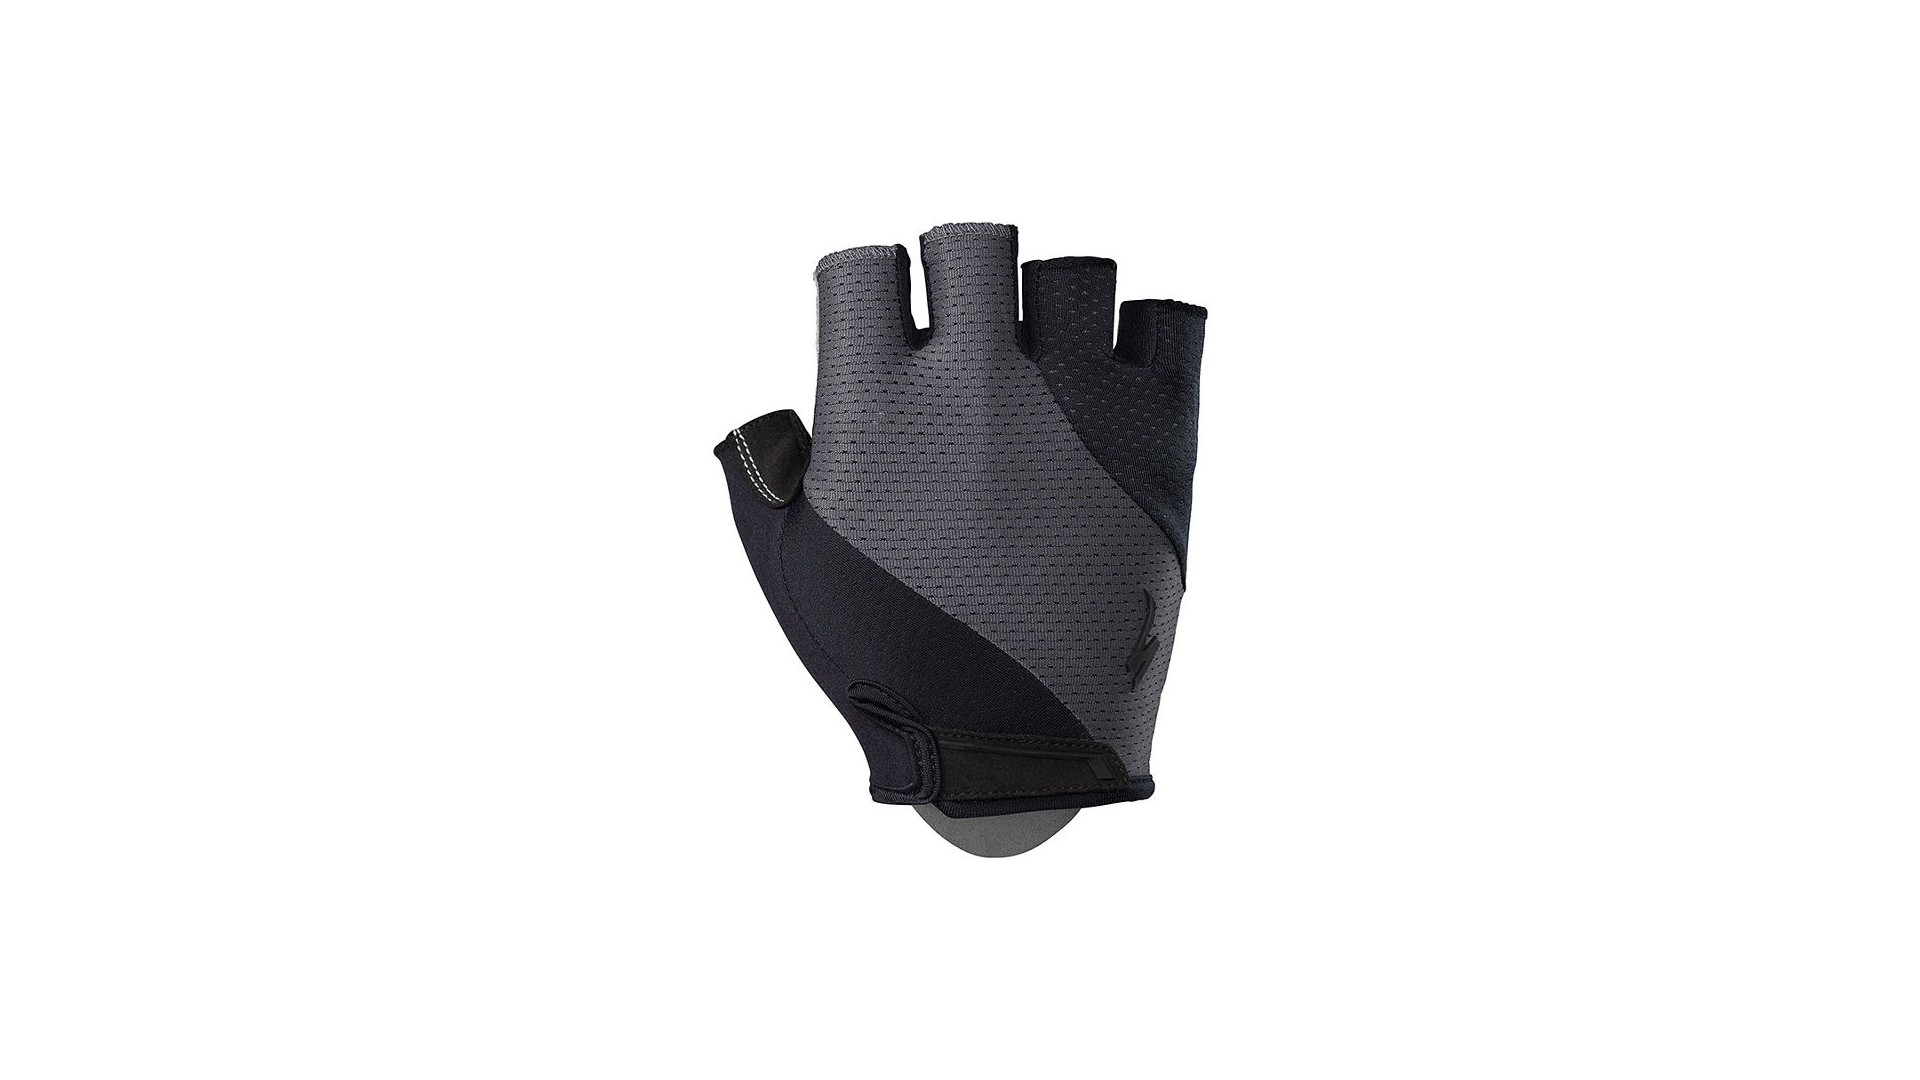 Gel Guantes Specialized Body Geometry Negro/Gris Carbono 1 IBKBike.es